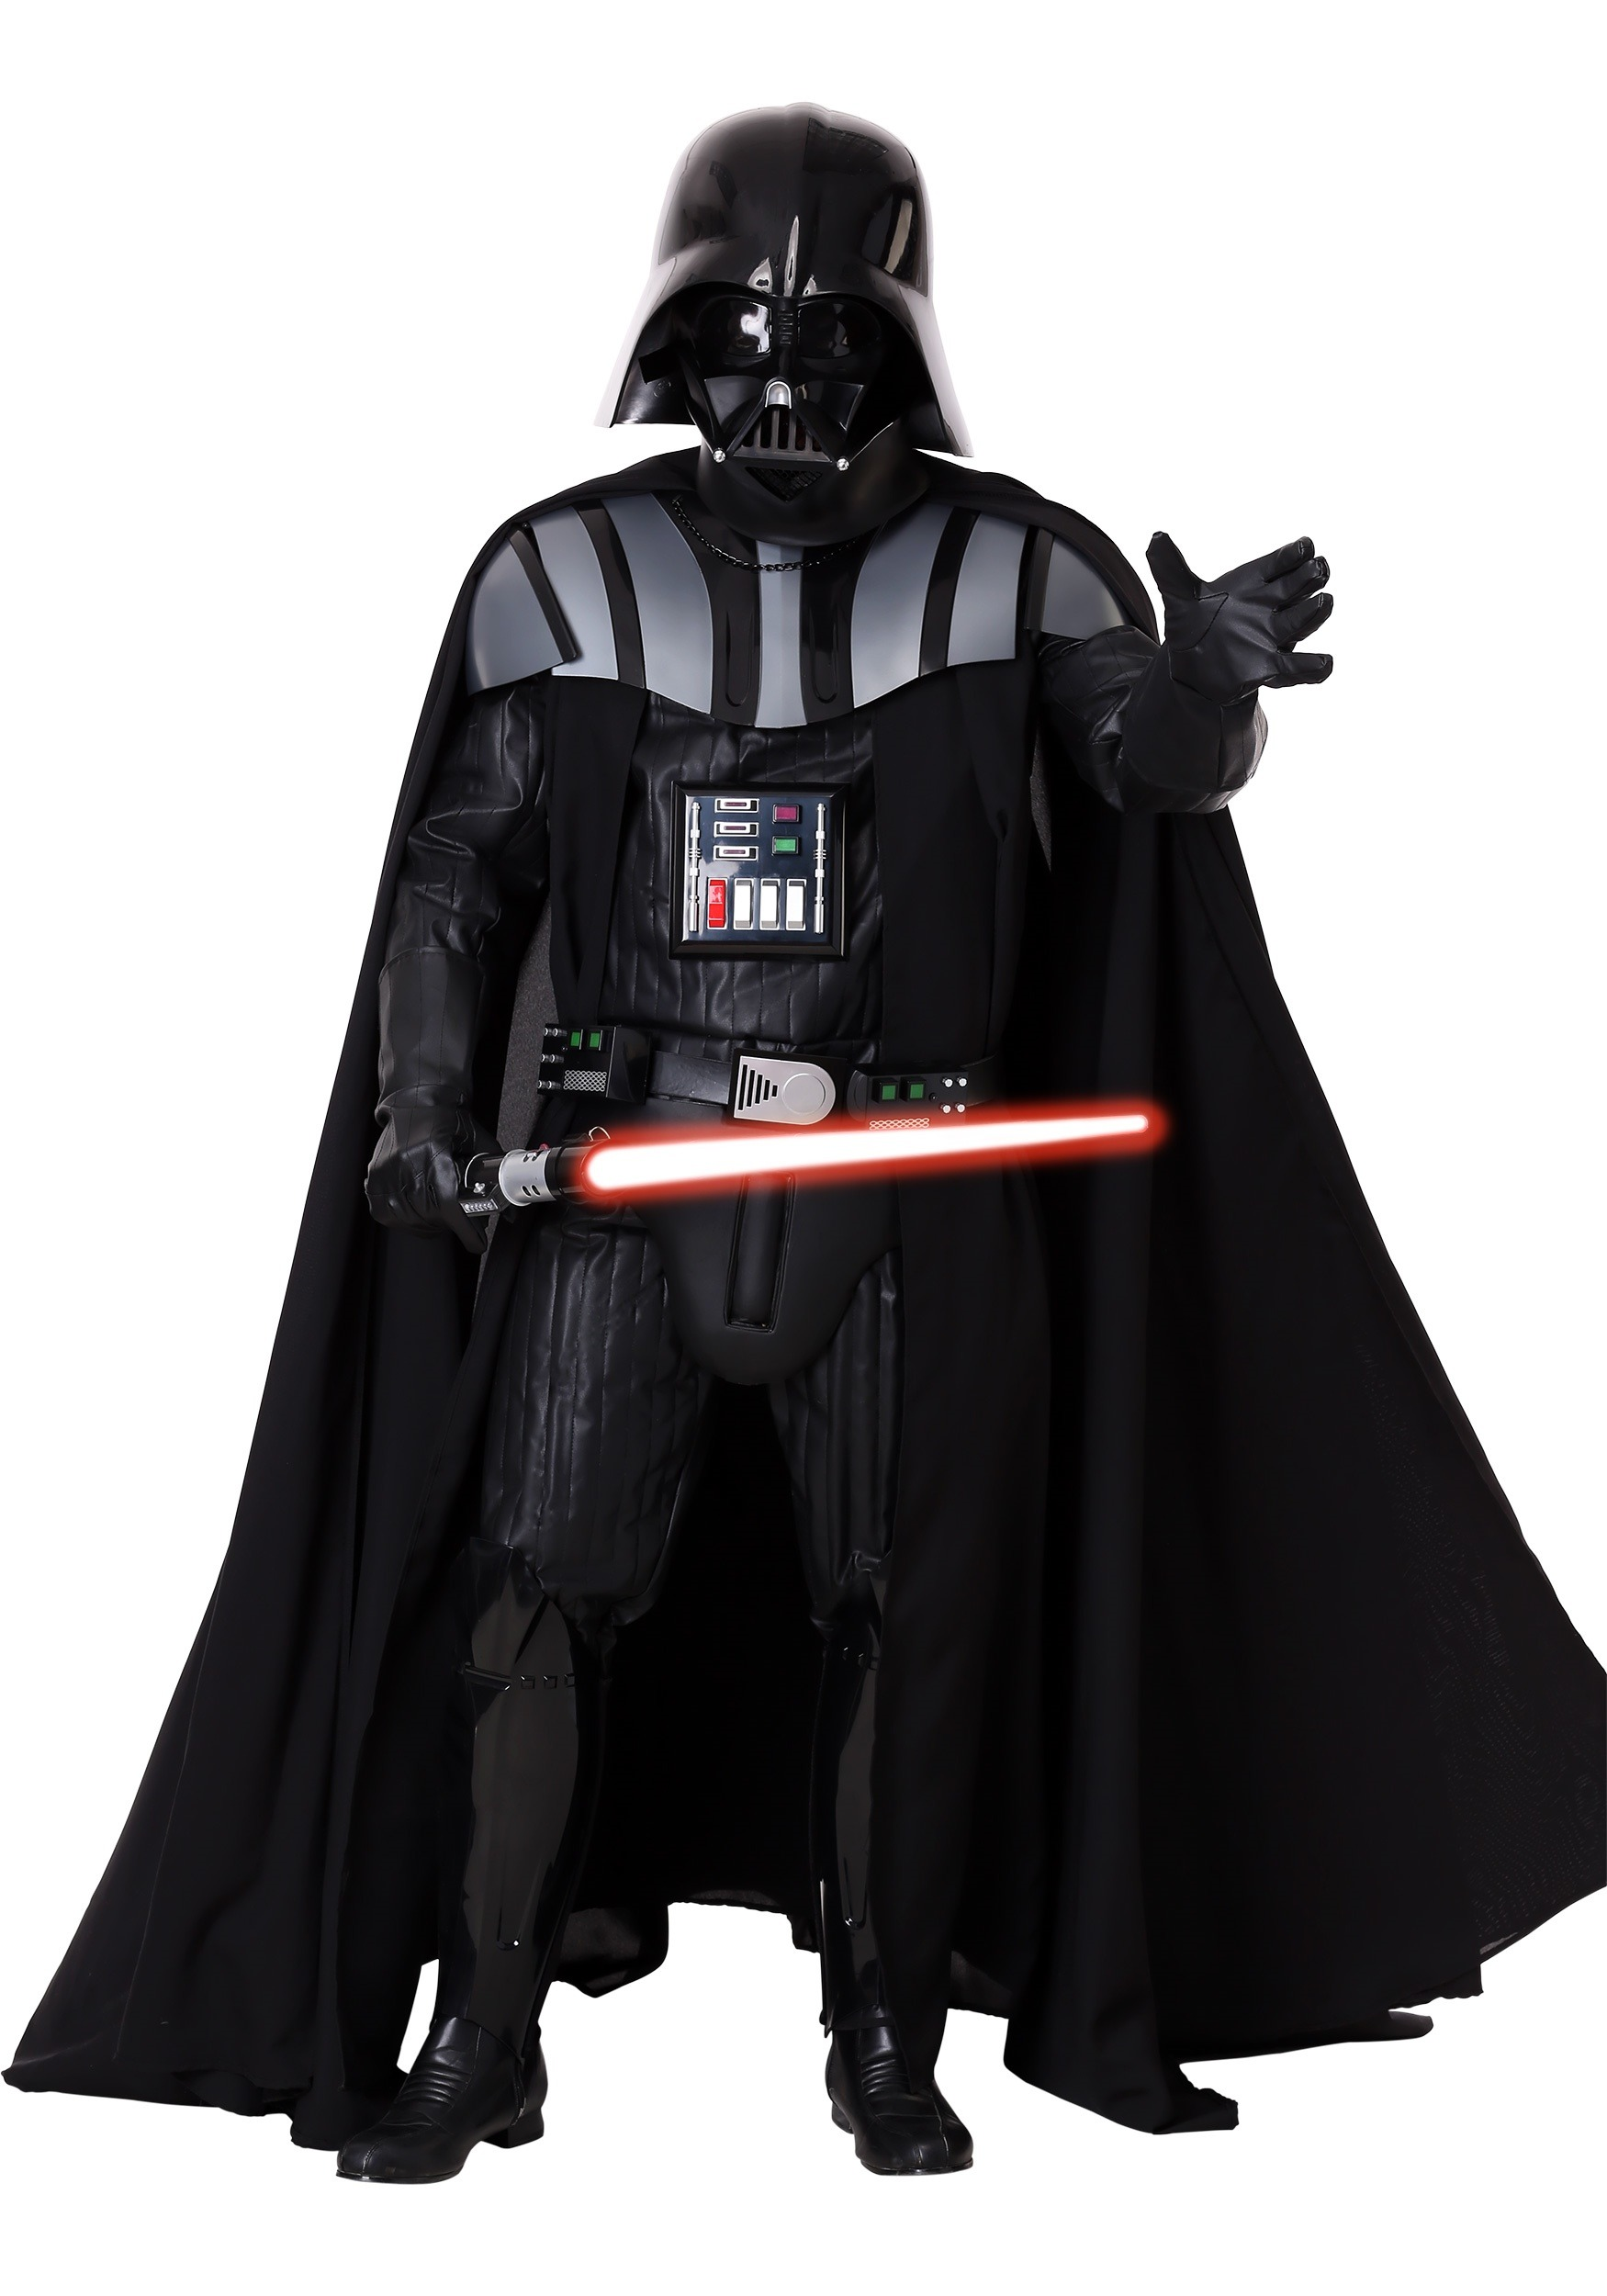 Authentic Costume Vader Darth Darth Authentic Vader eIWHEY9D2